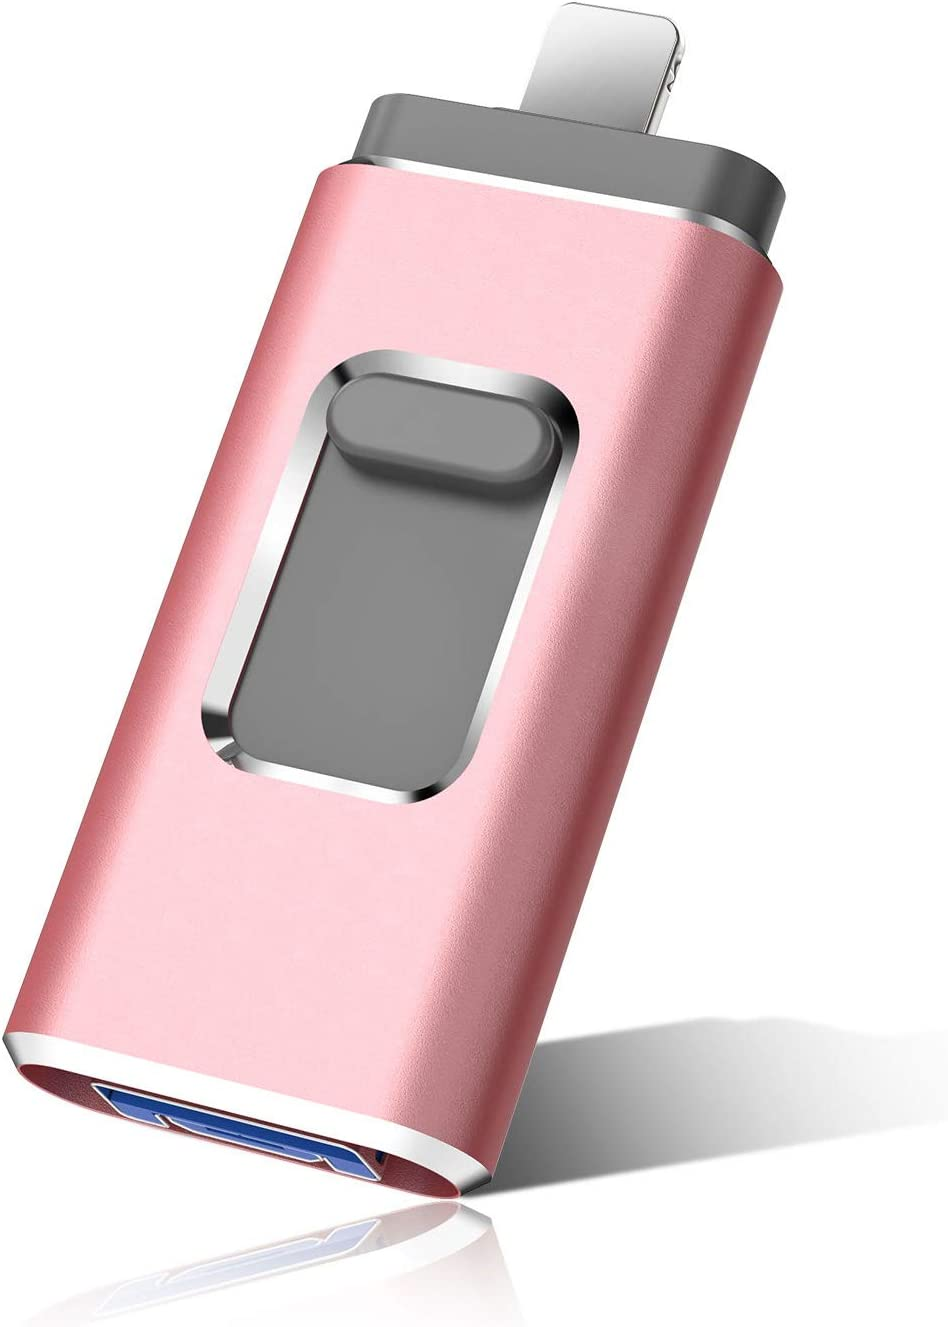 Flash Drive for Phone Photo Stick 1000GB Memory Stick USB 3.0 Flash Drive Thumb Drive for Phone Pad Android and Computers (1TB, Pink)